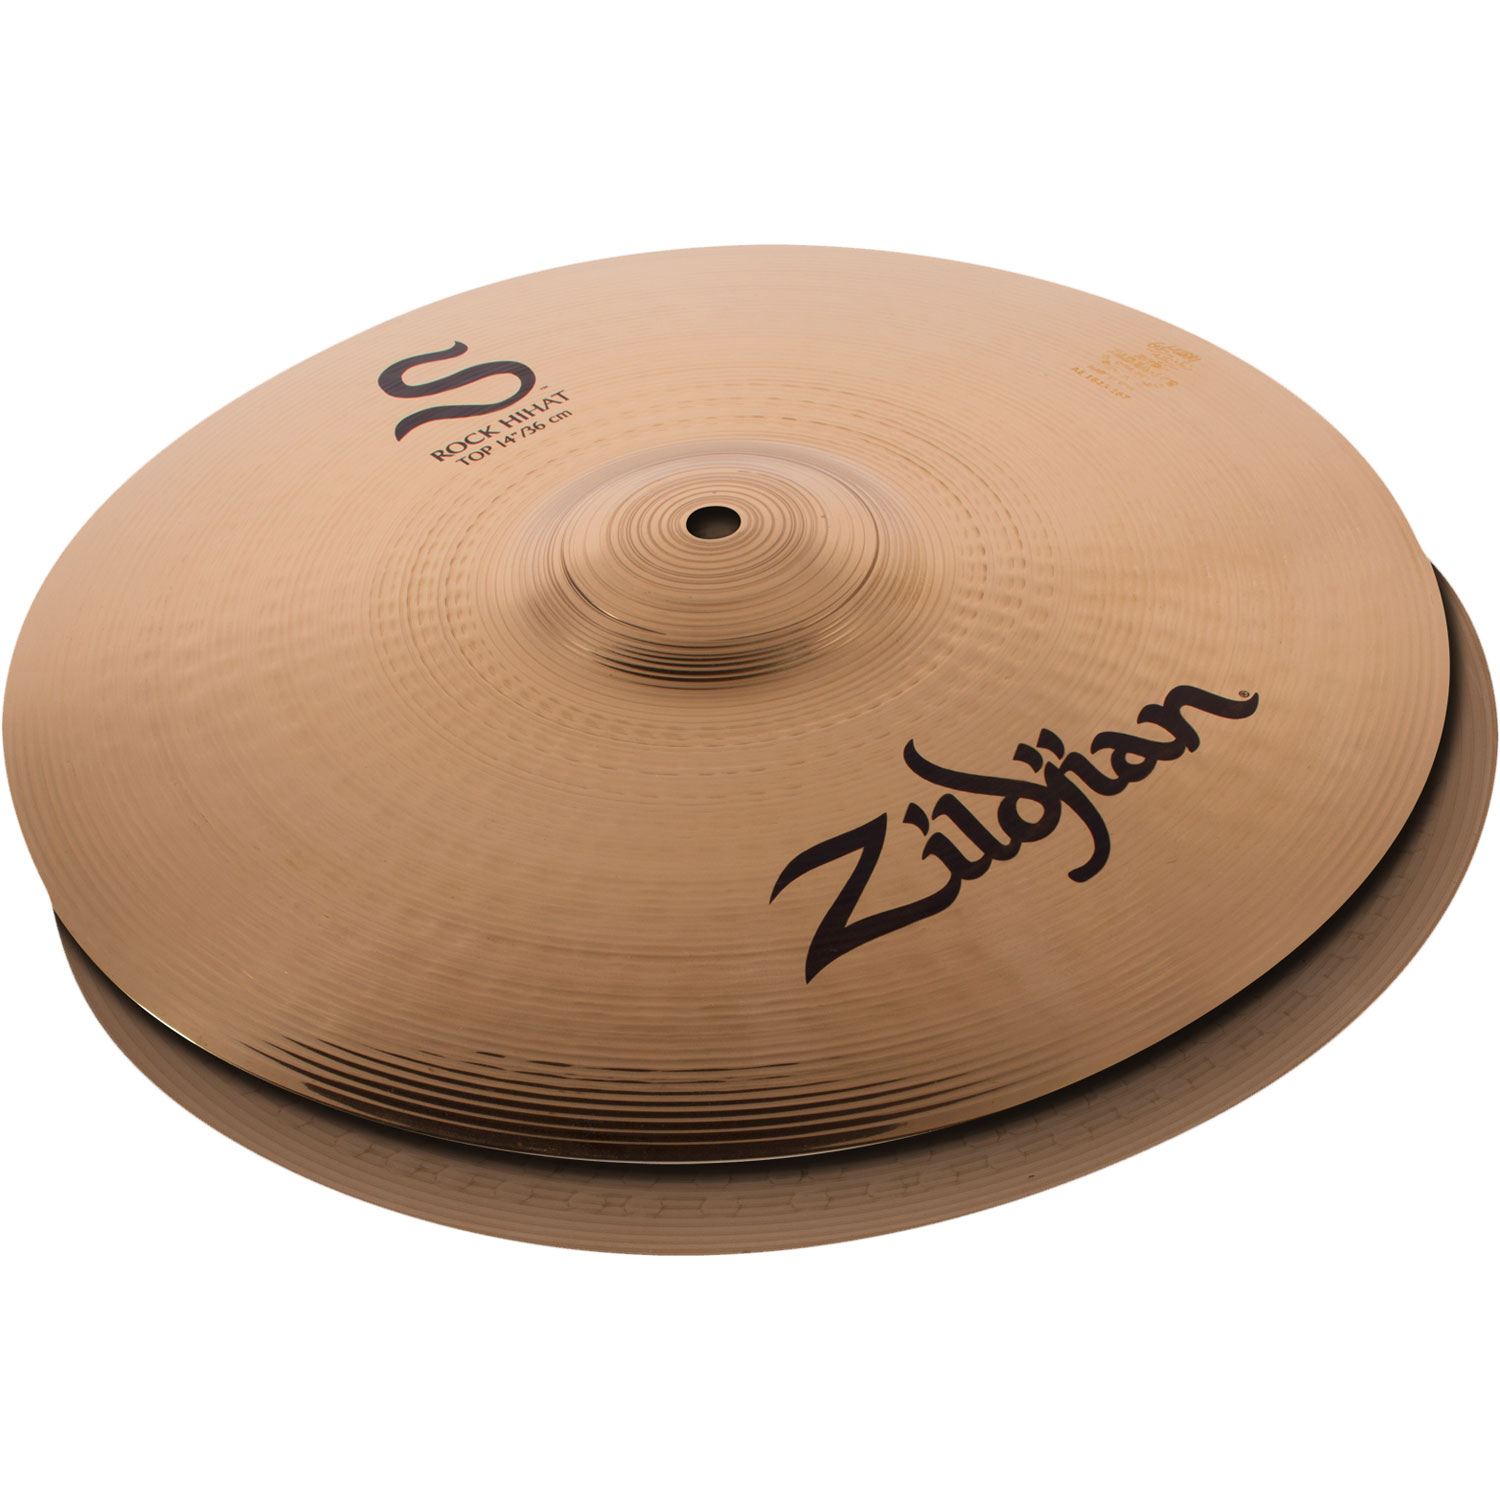 Dating zildjian cymbals in Brisbane